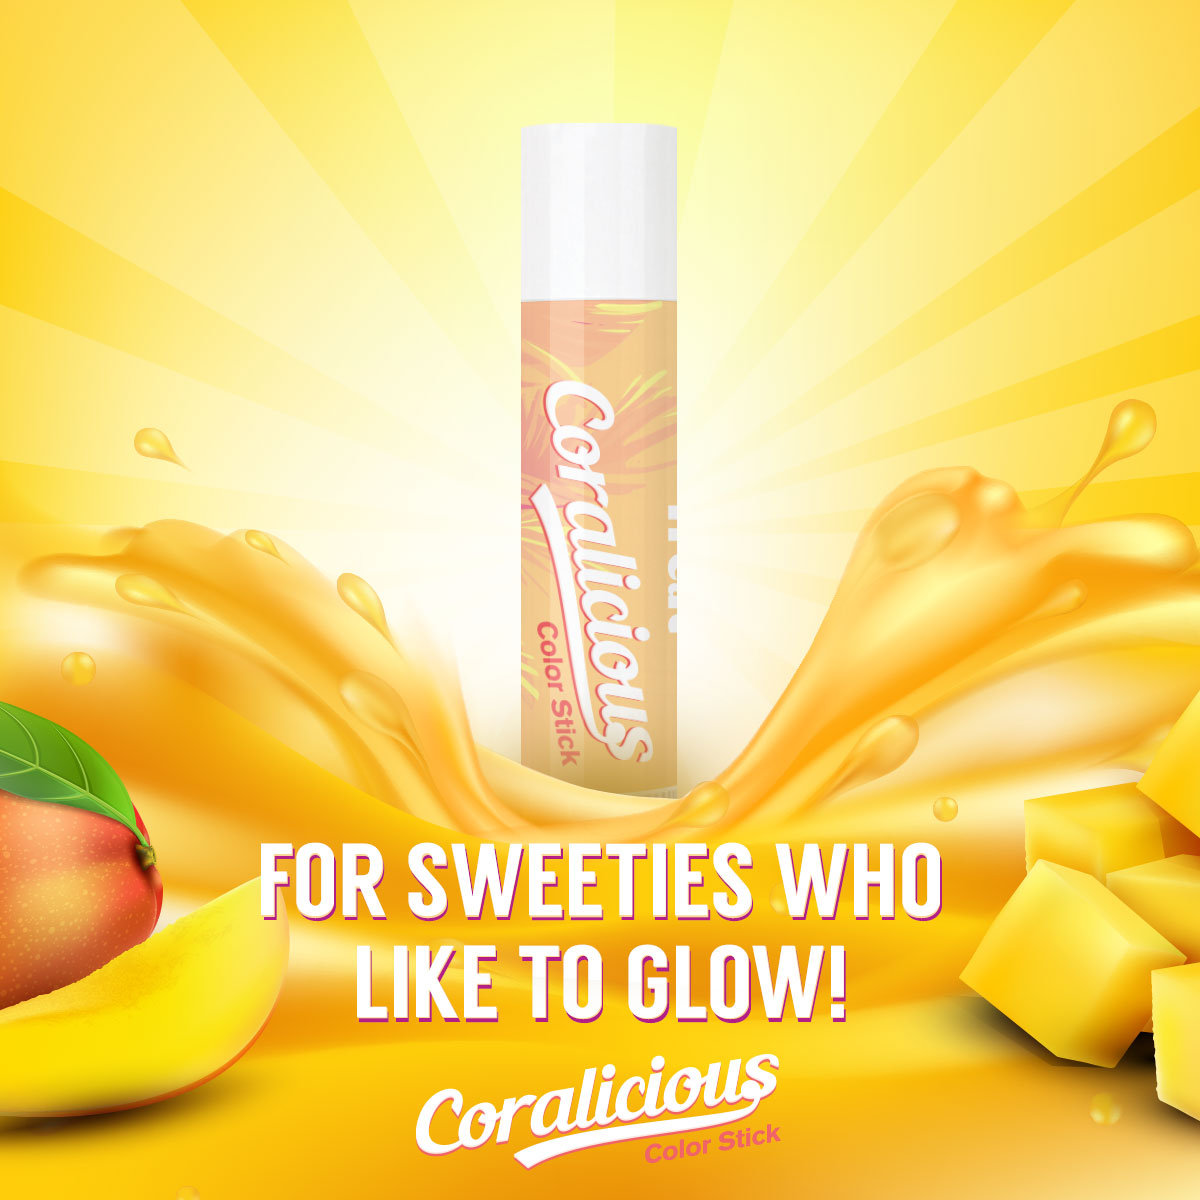 Treat Coralicious Color Stick